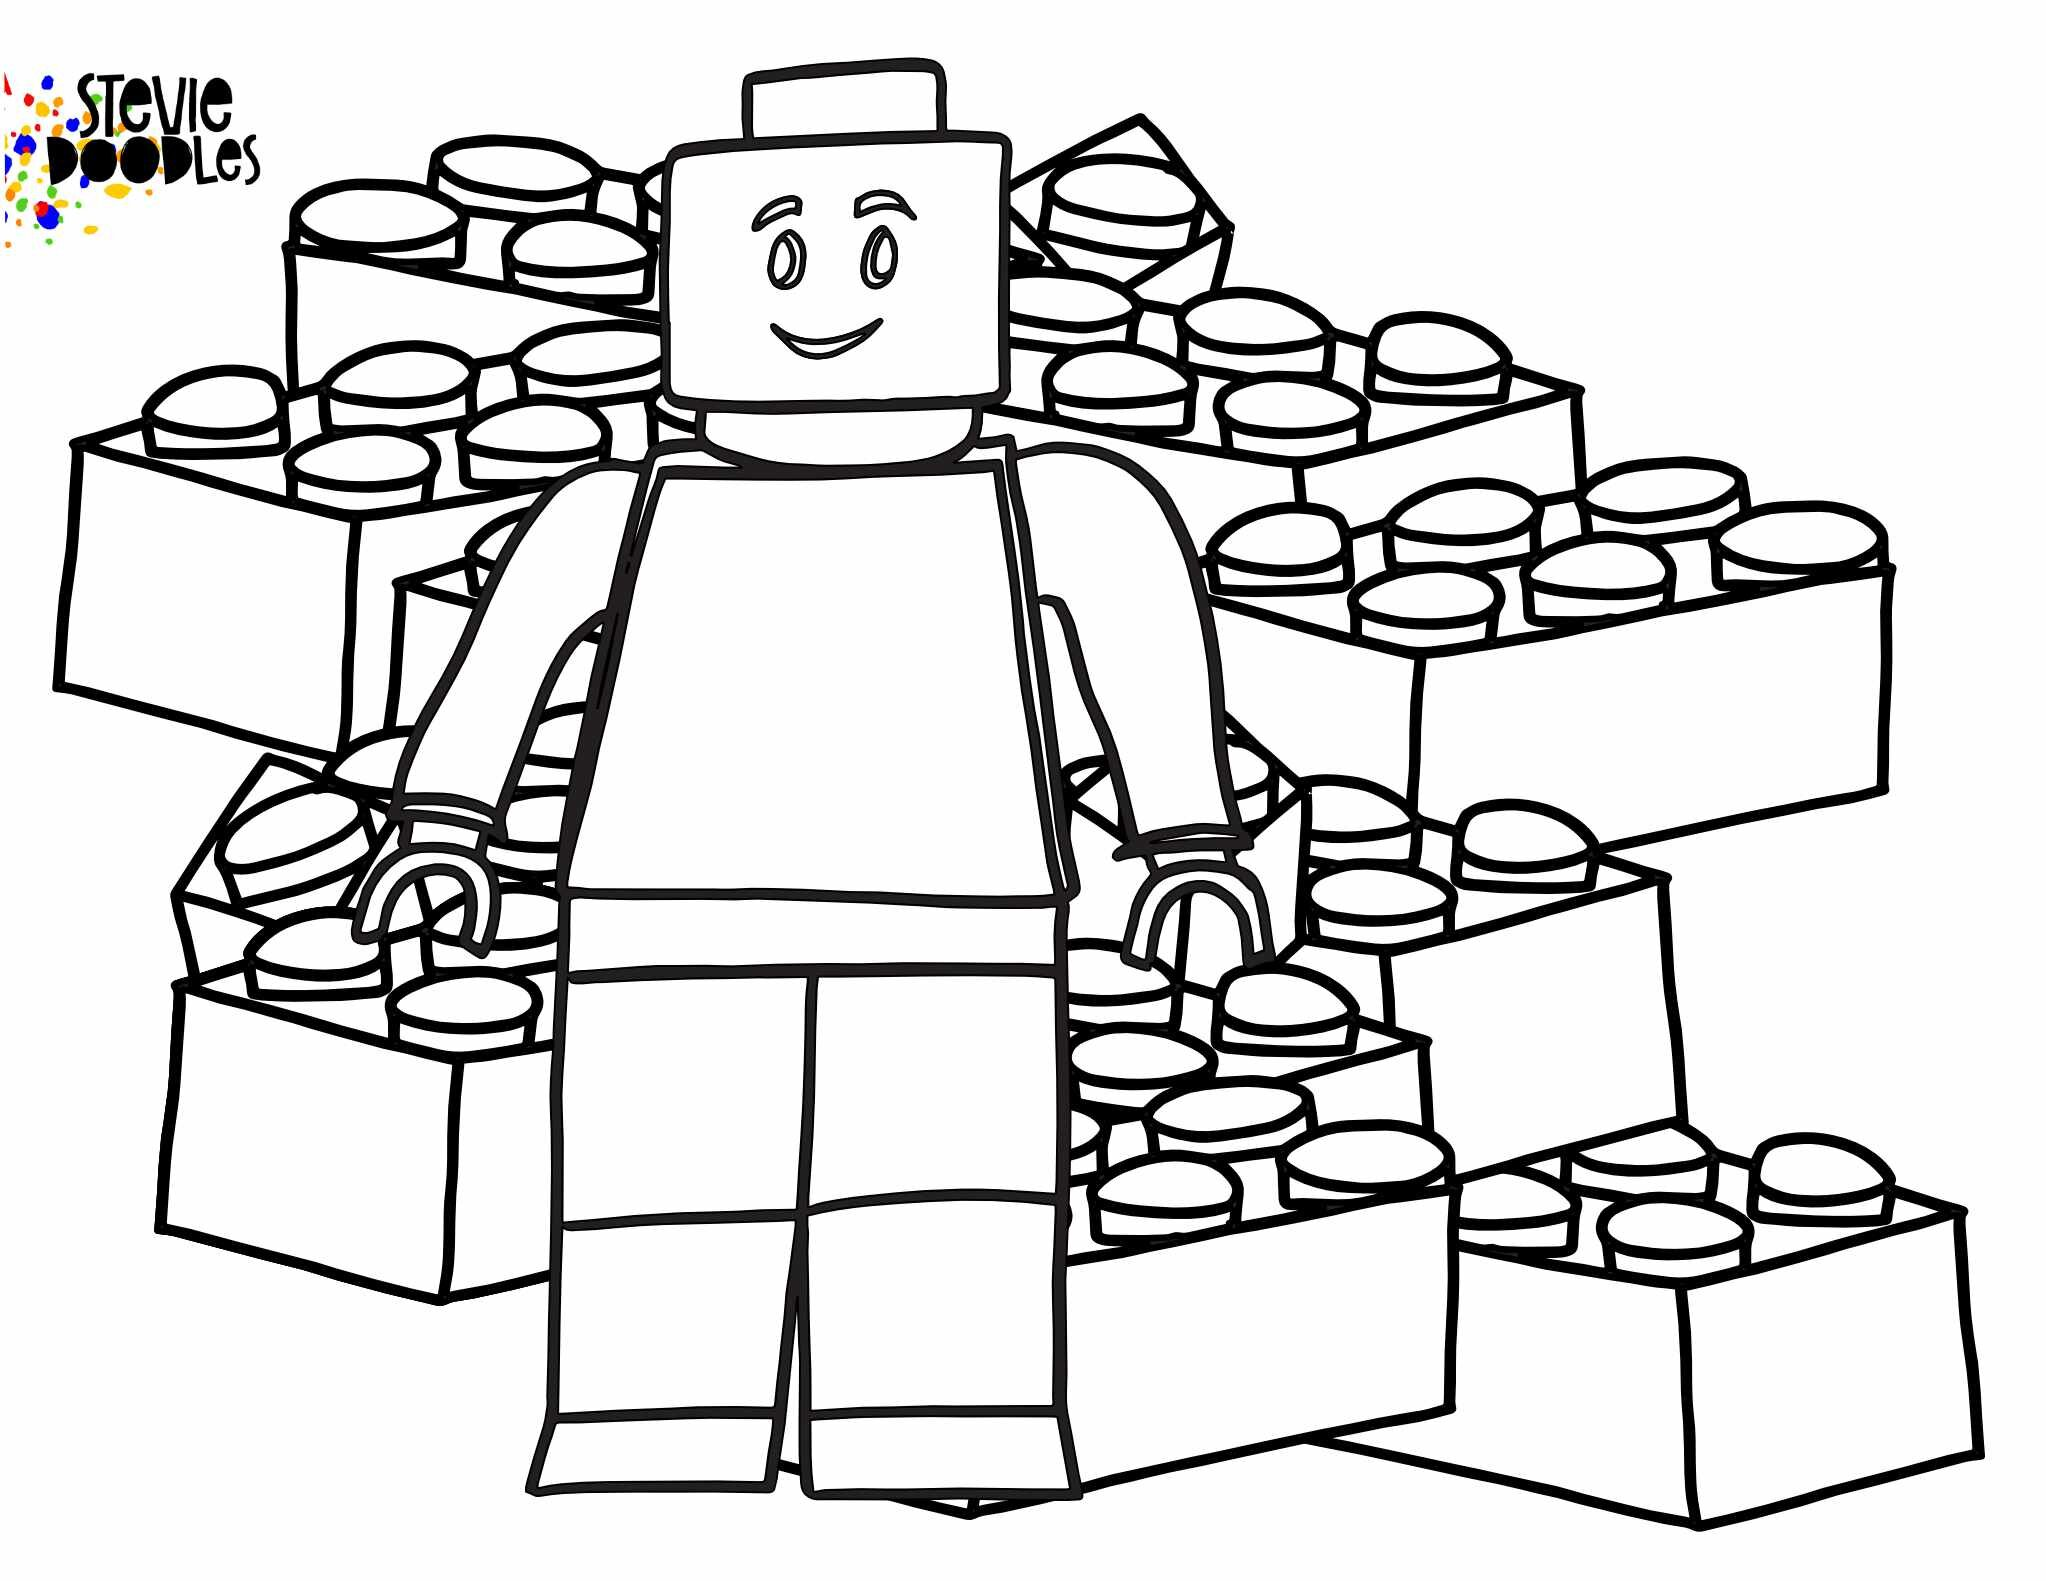 LEGO Gifted By God Coloring Pages FREE! — Stevie Doodles